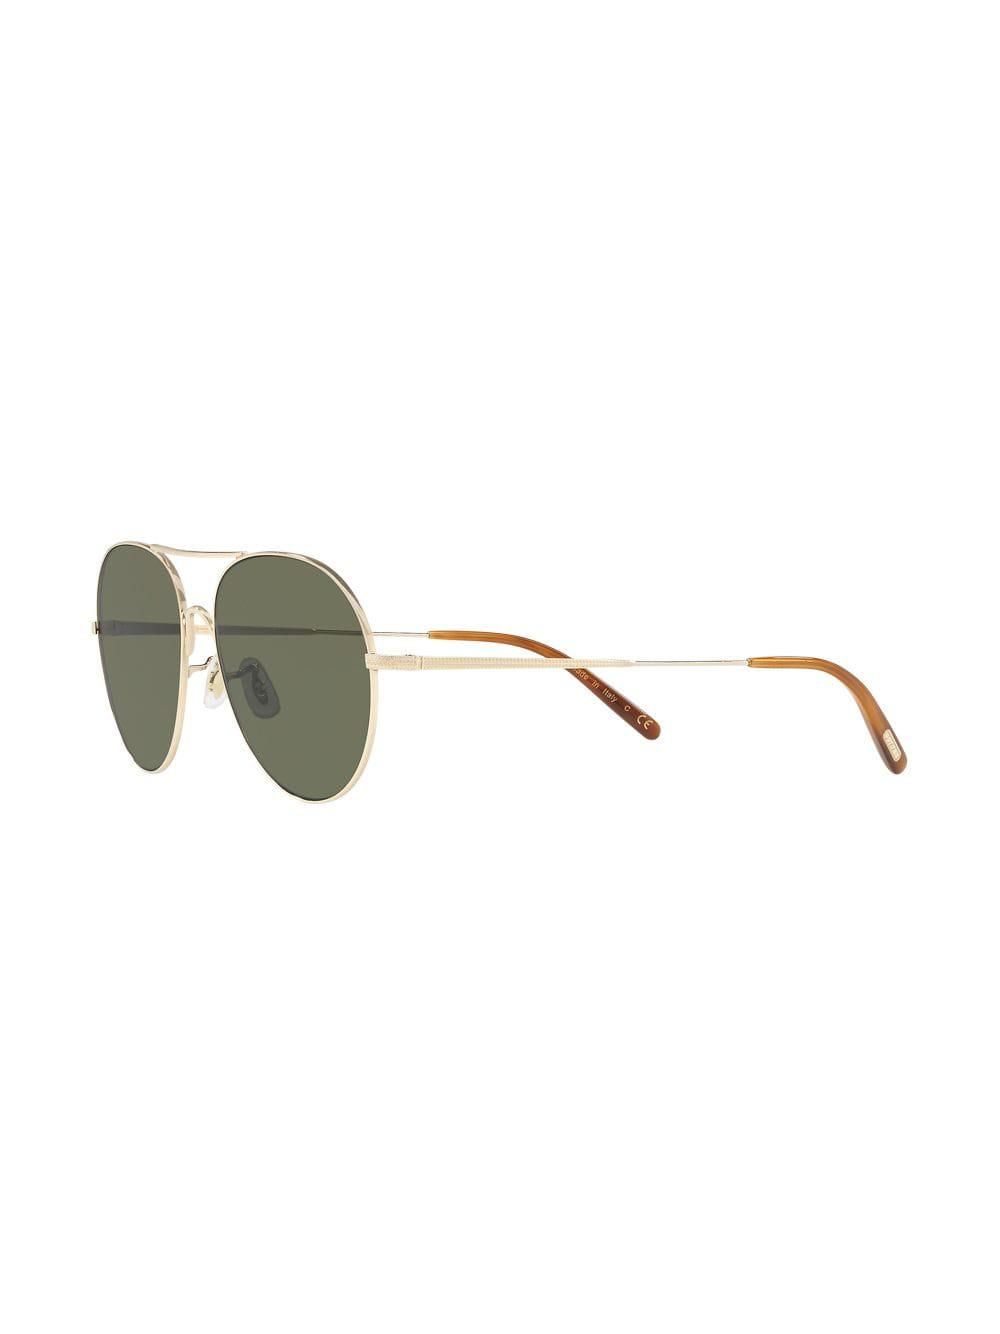 06636c51a42 Oliver Peoples Rockmore Sunglasses in Metallic for Men - Lyst